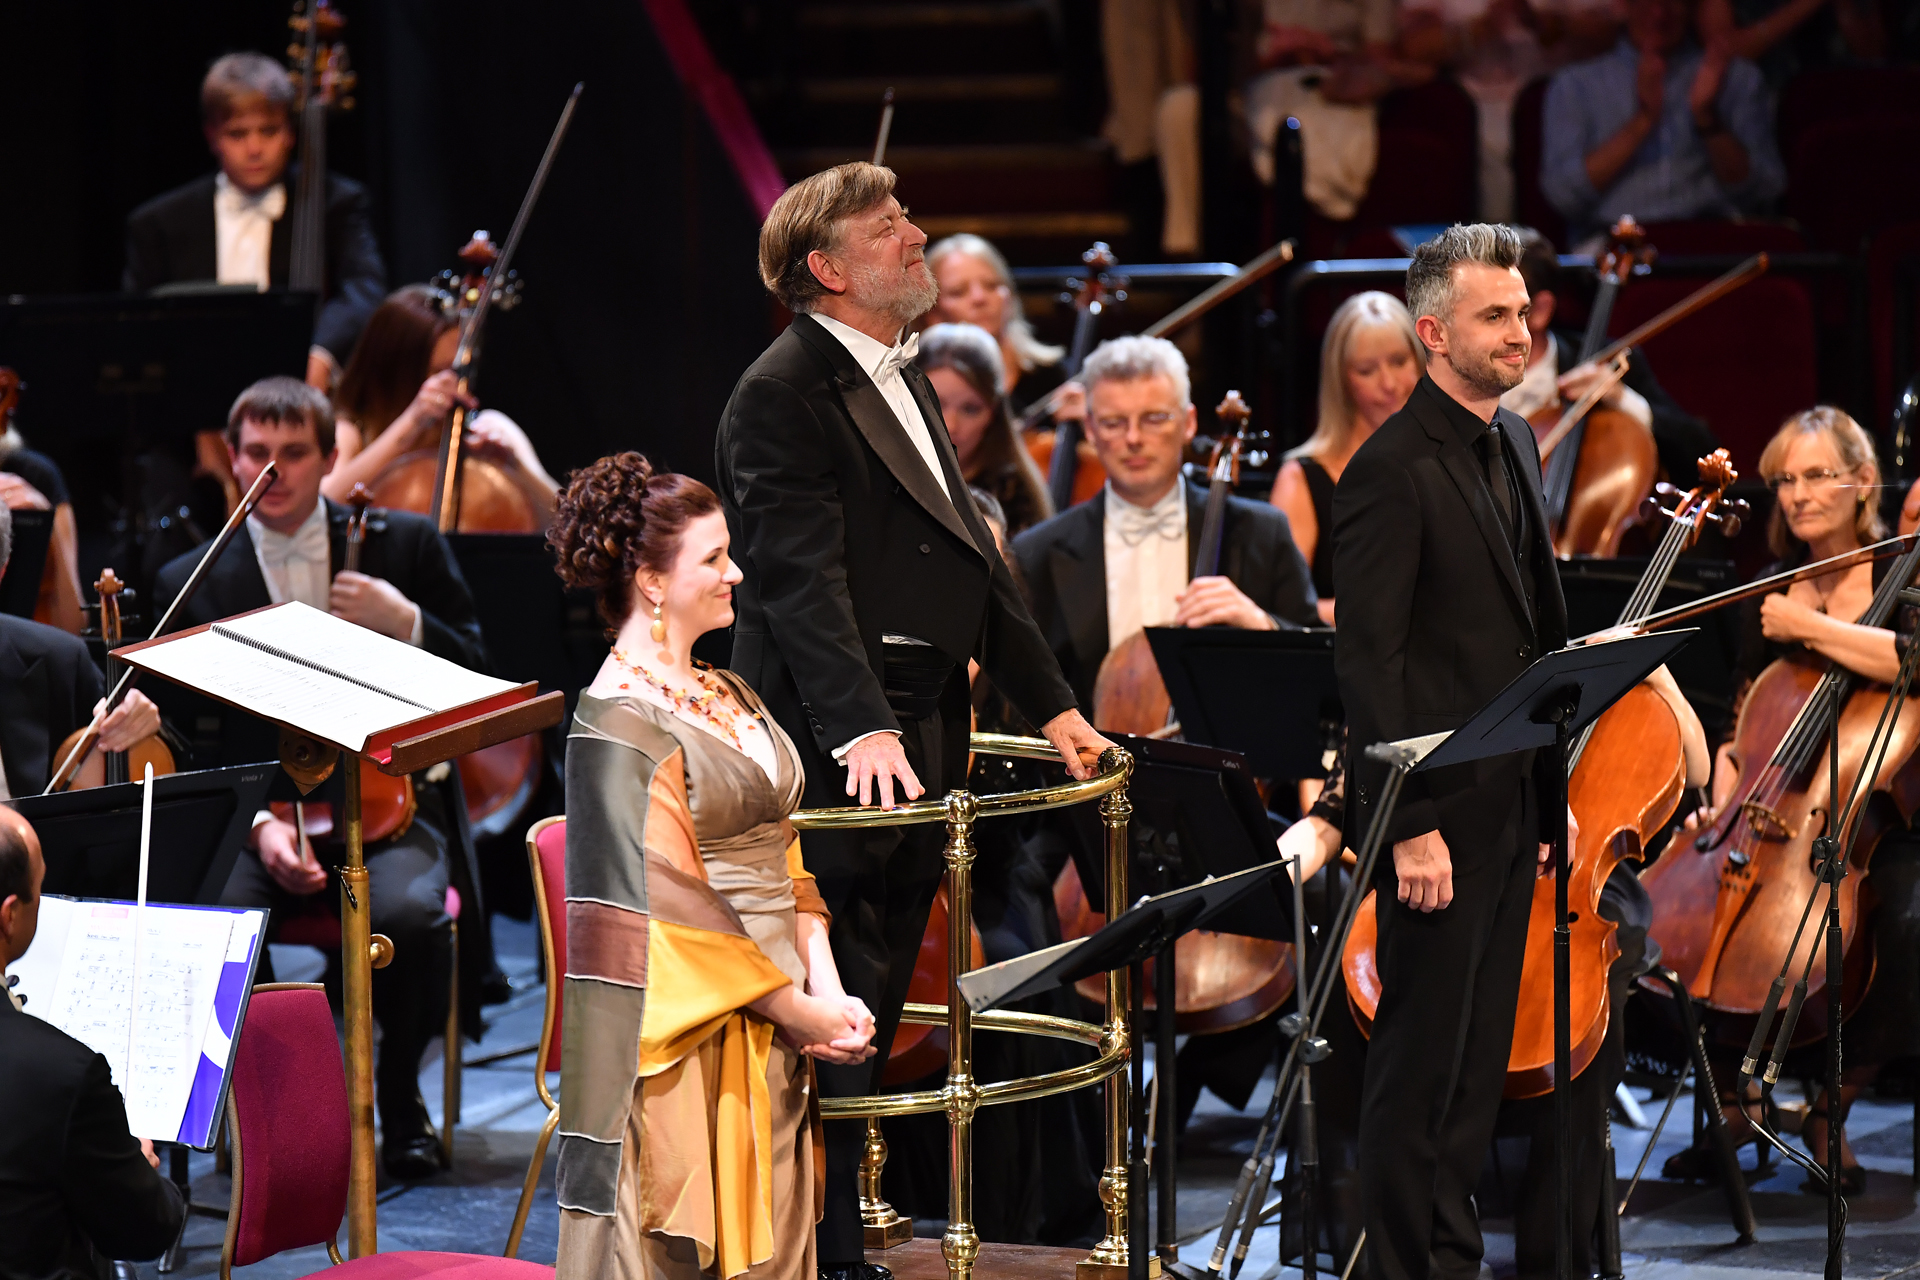 Wood's Scenes from Comus at the Proms